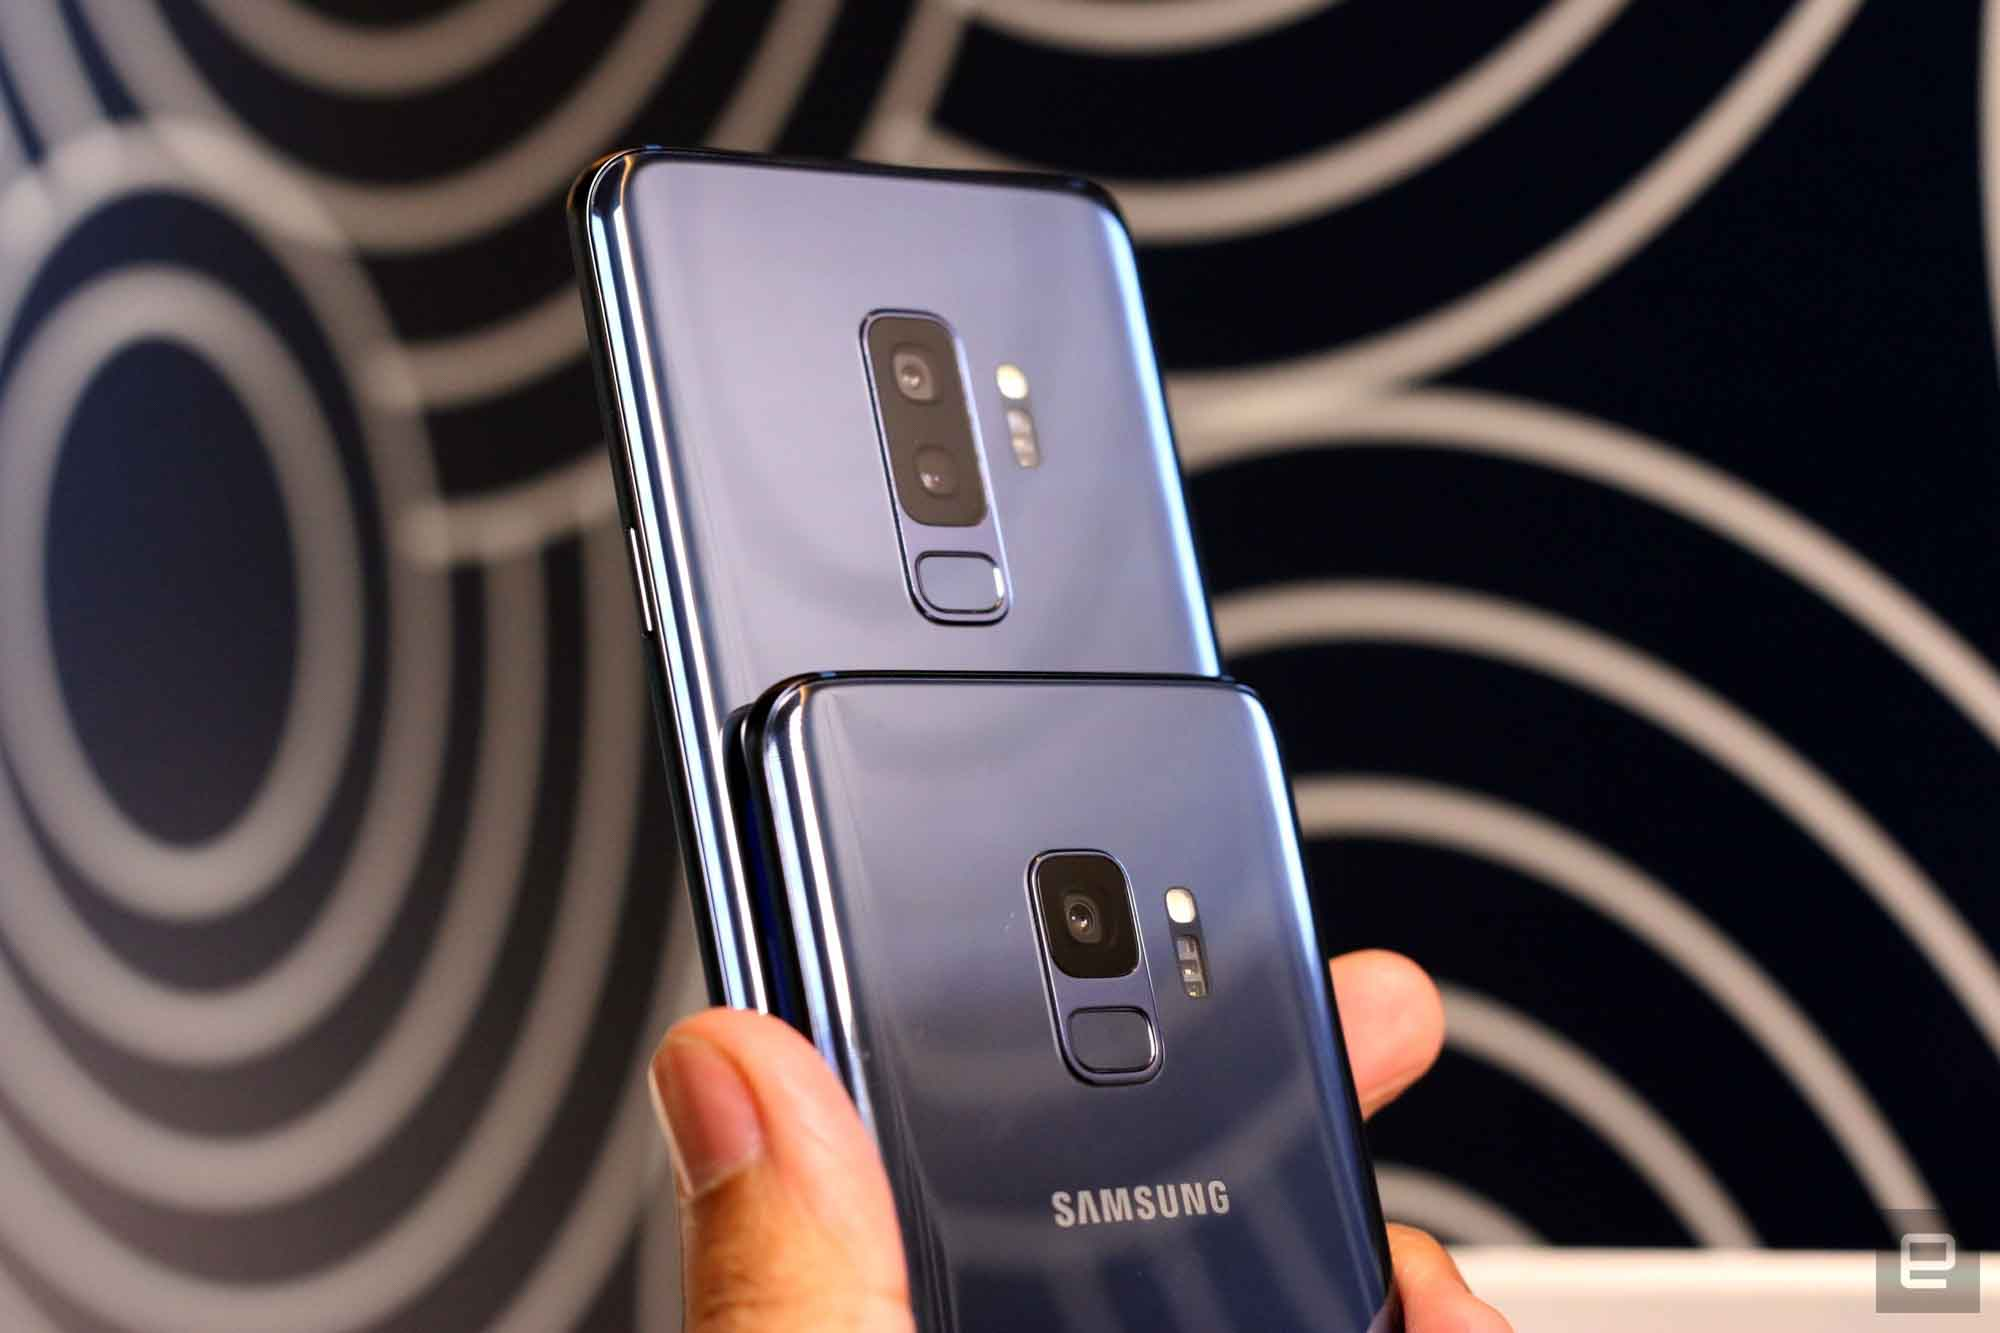 All you need to know about the new Samsung Galaxy S9, Galaxy S9+